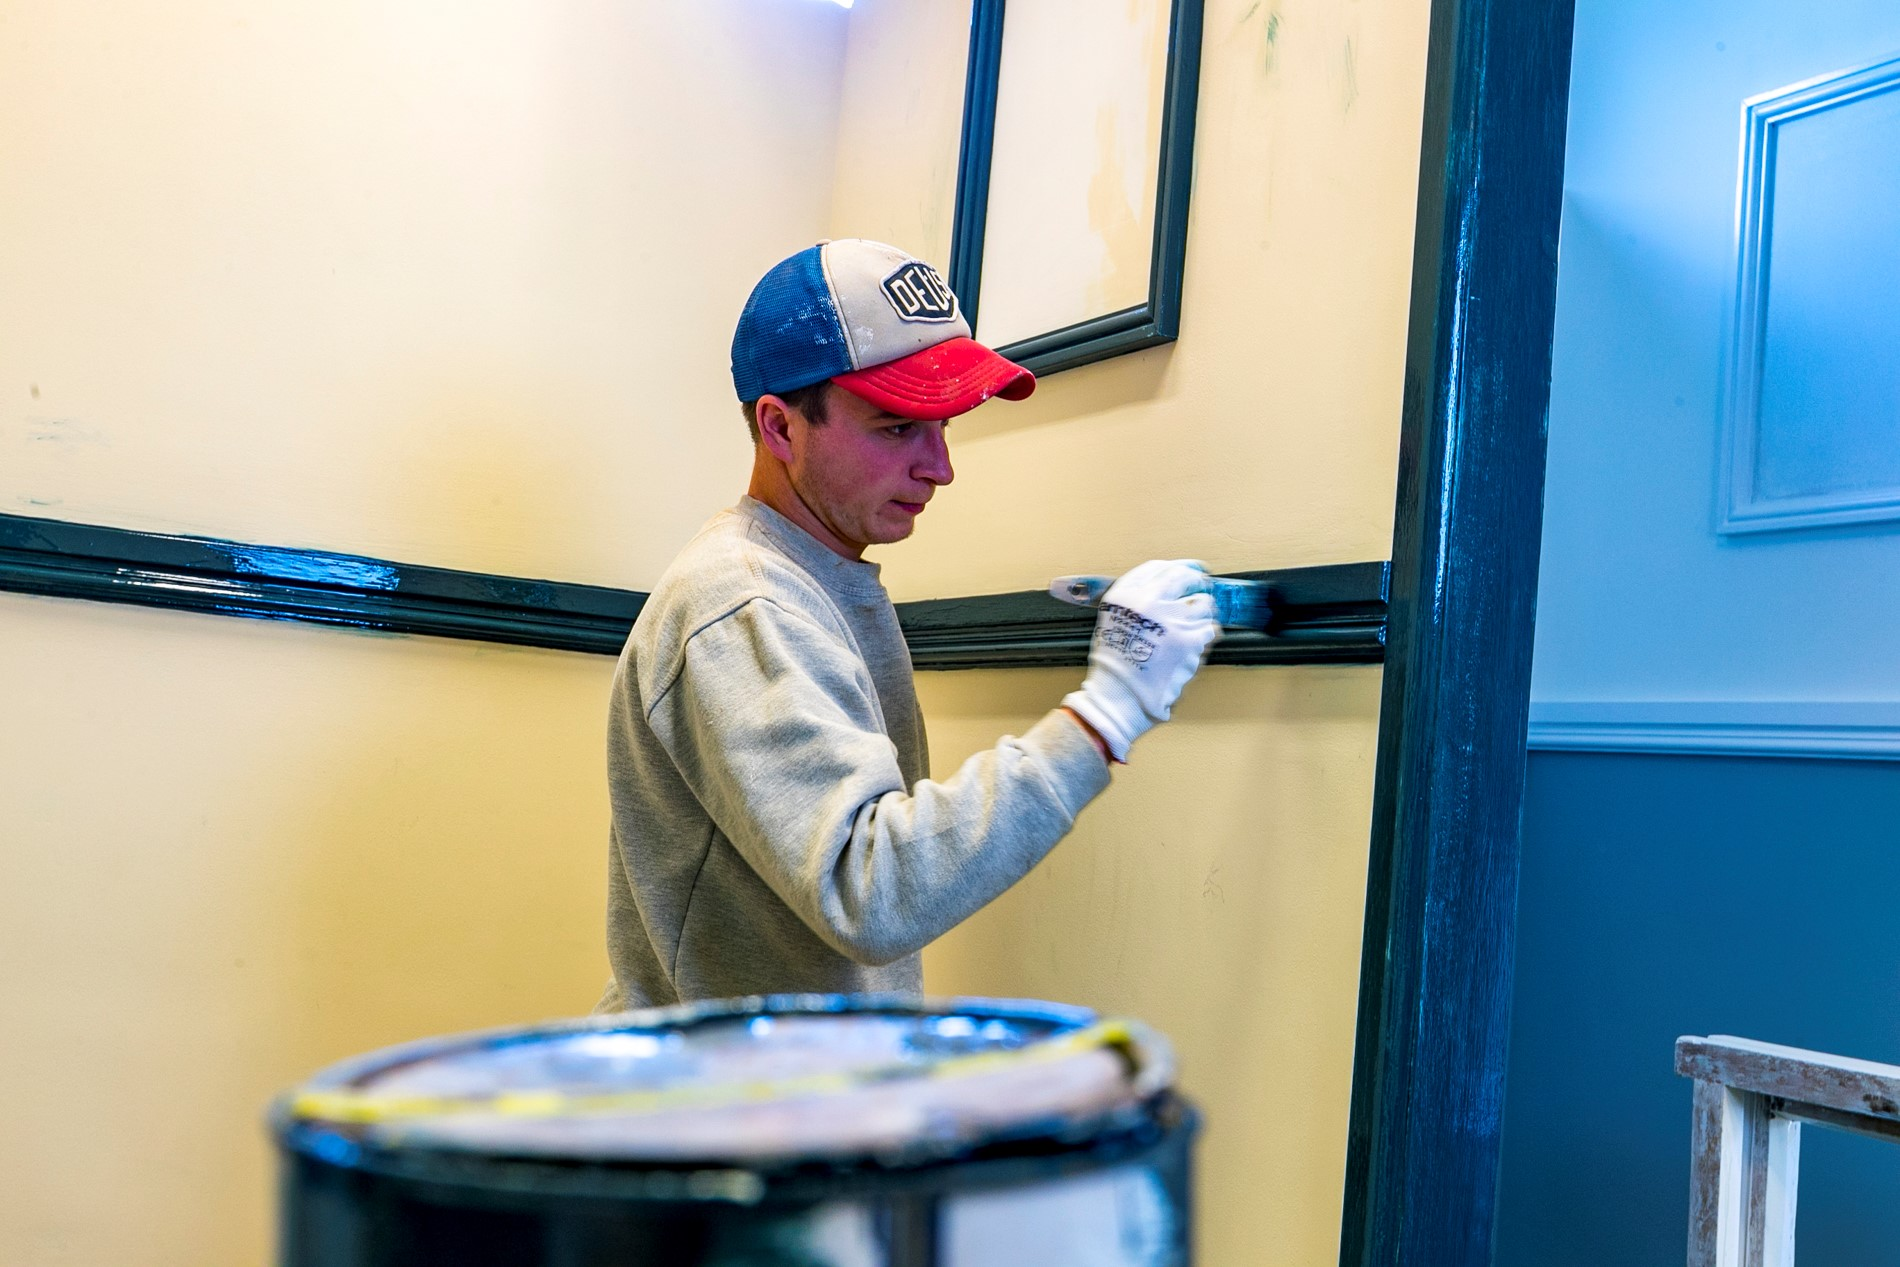 Painting and Decorating Apprentice